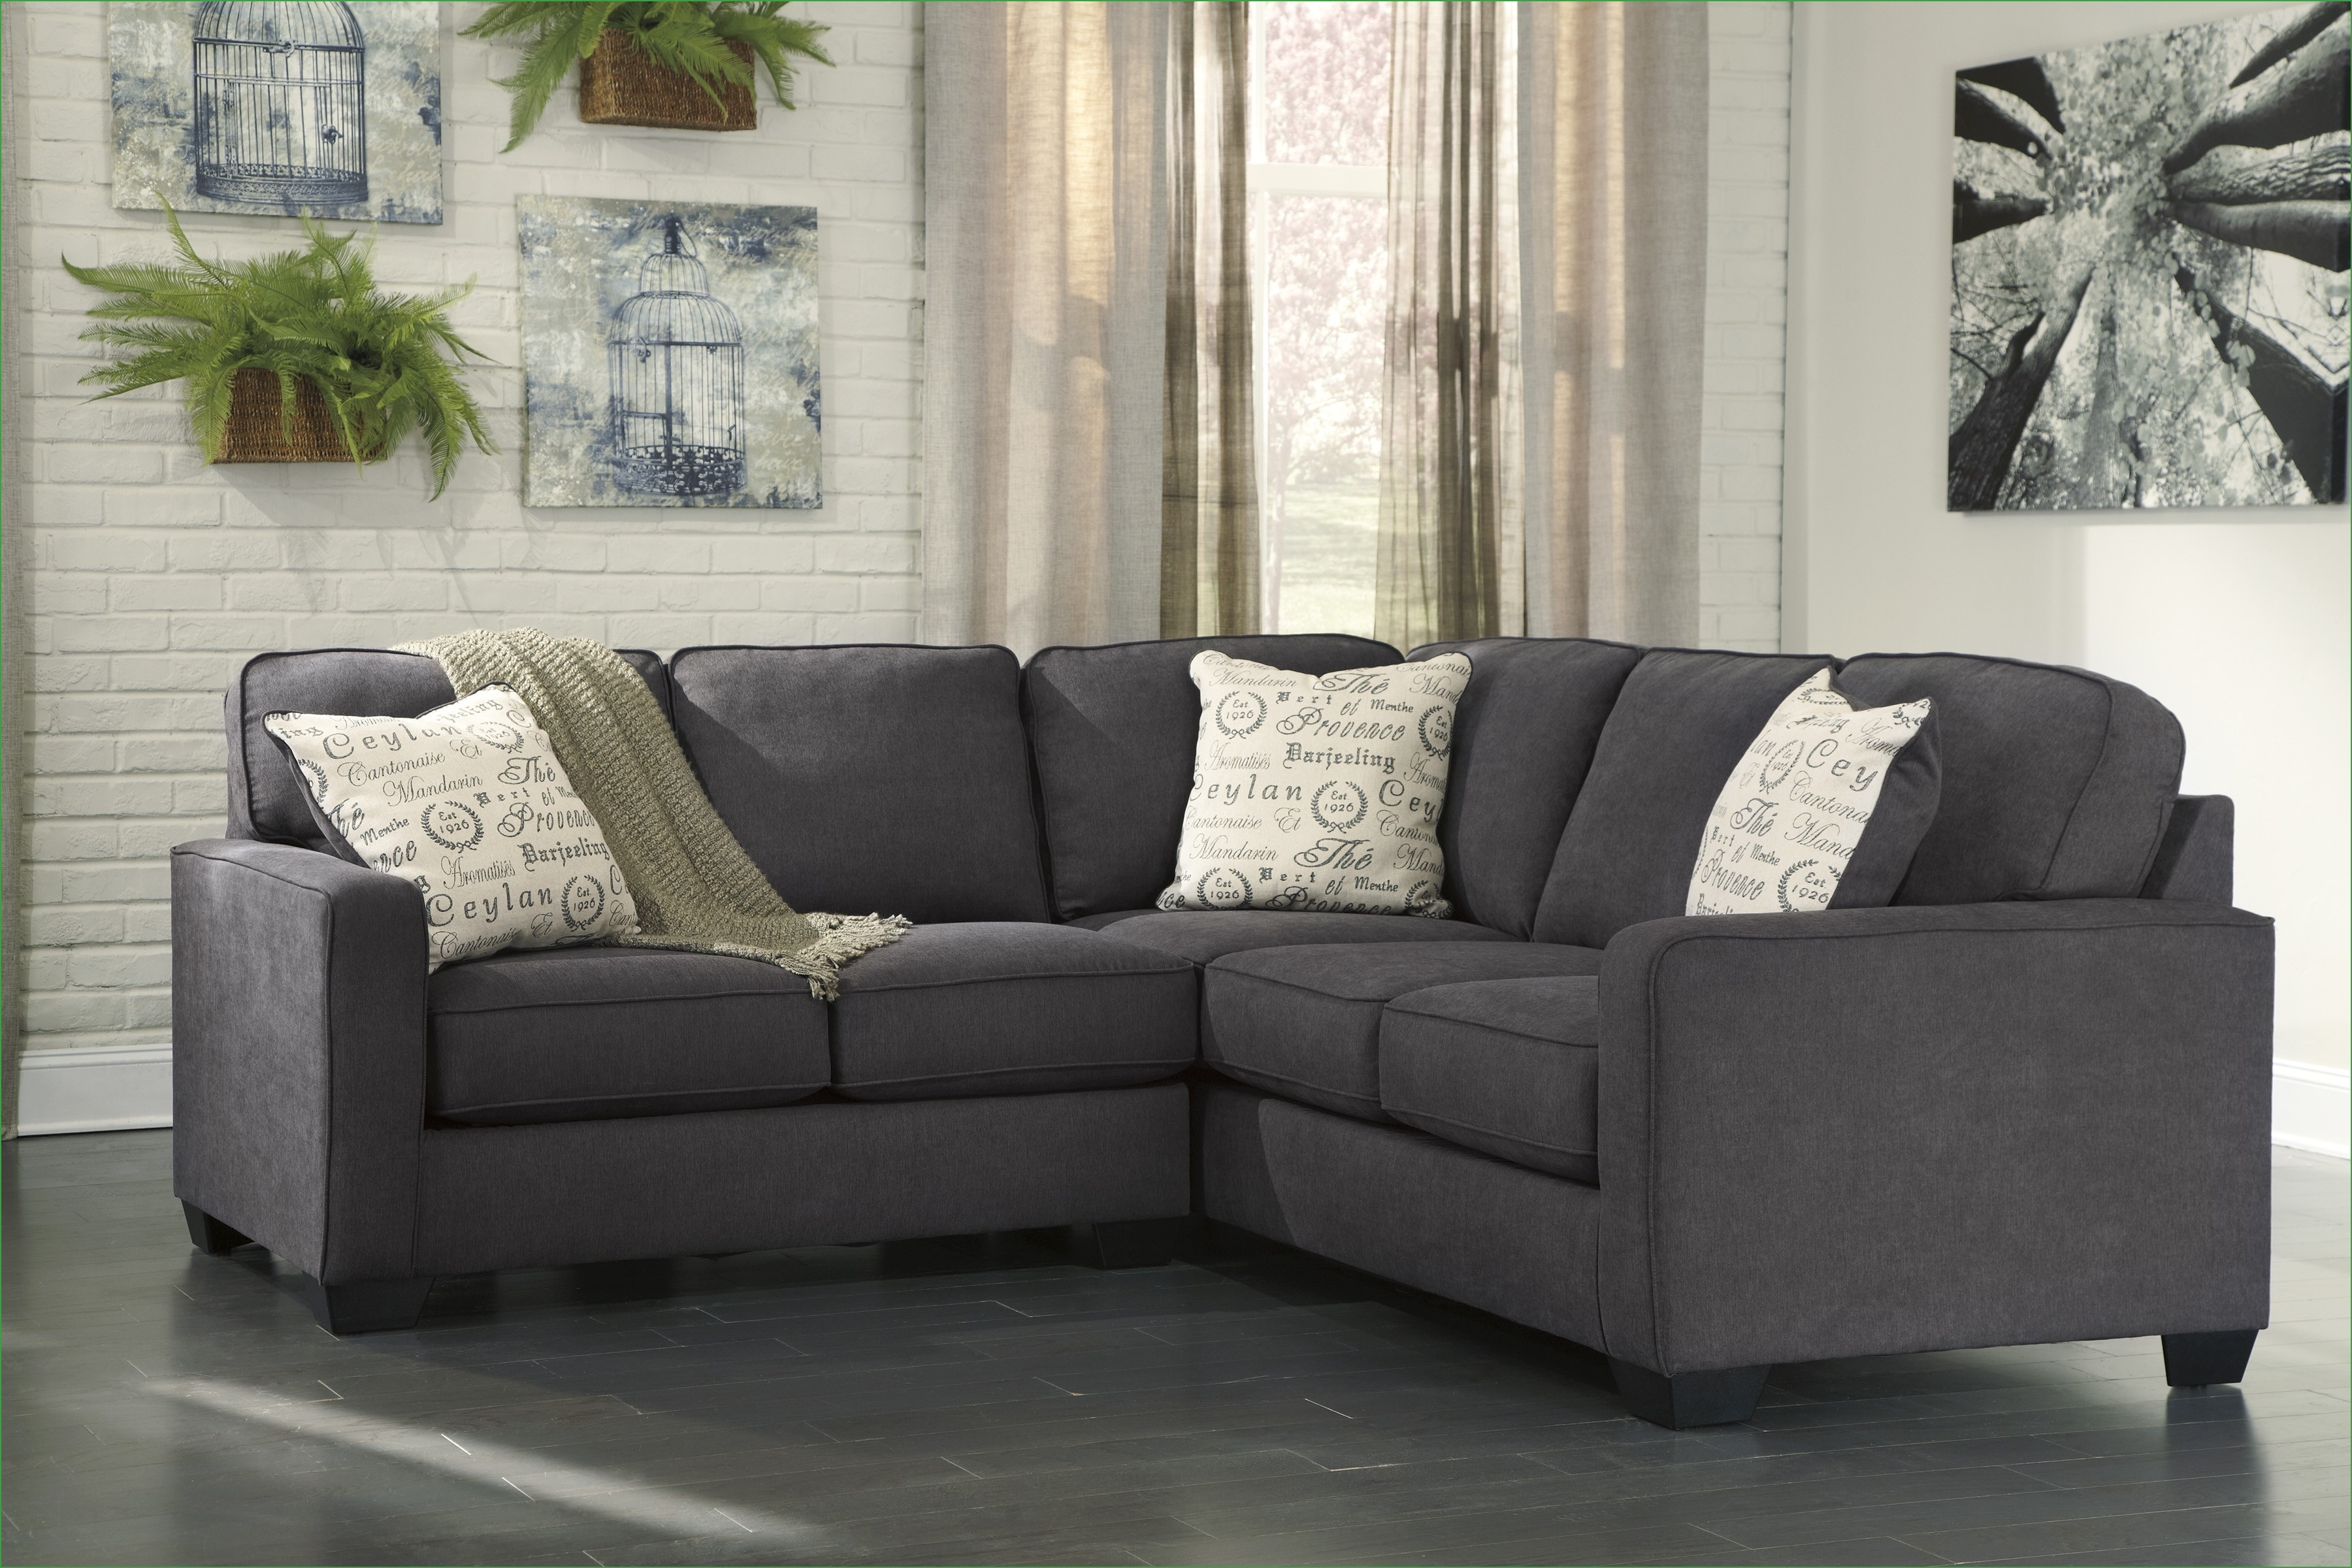 Simple Small 2 Piece Sectional Sofa 58 For Your American Made Inside American Made Sectional Sofas (Image 13 of 15)